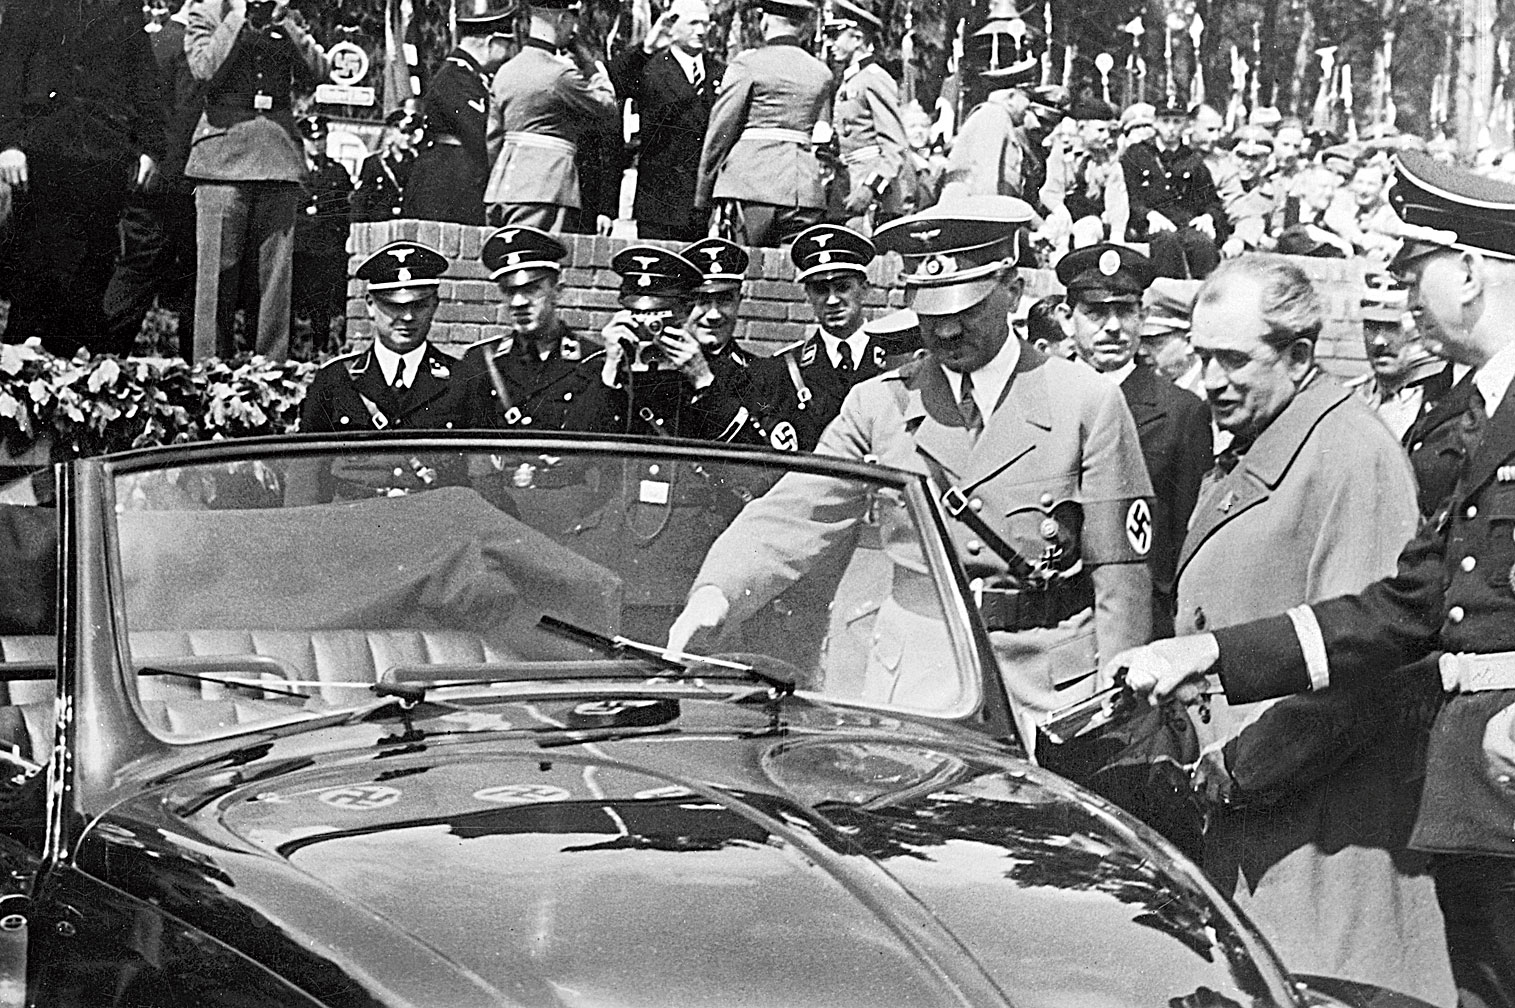 German chancellor Adolf Hitler inspects the new Volkswagen 'people's car' at the Fallersleben car factory on May 27, 1938. On the right is the car's designer Ferdinand Porsche